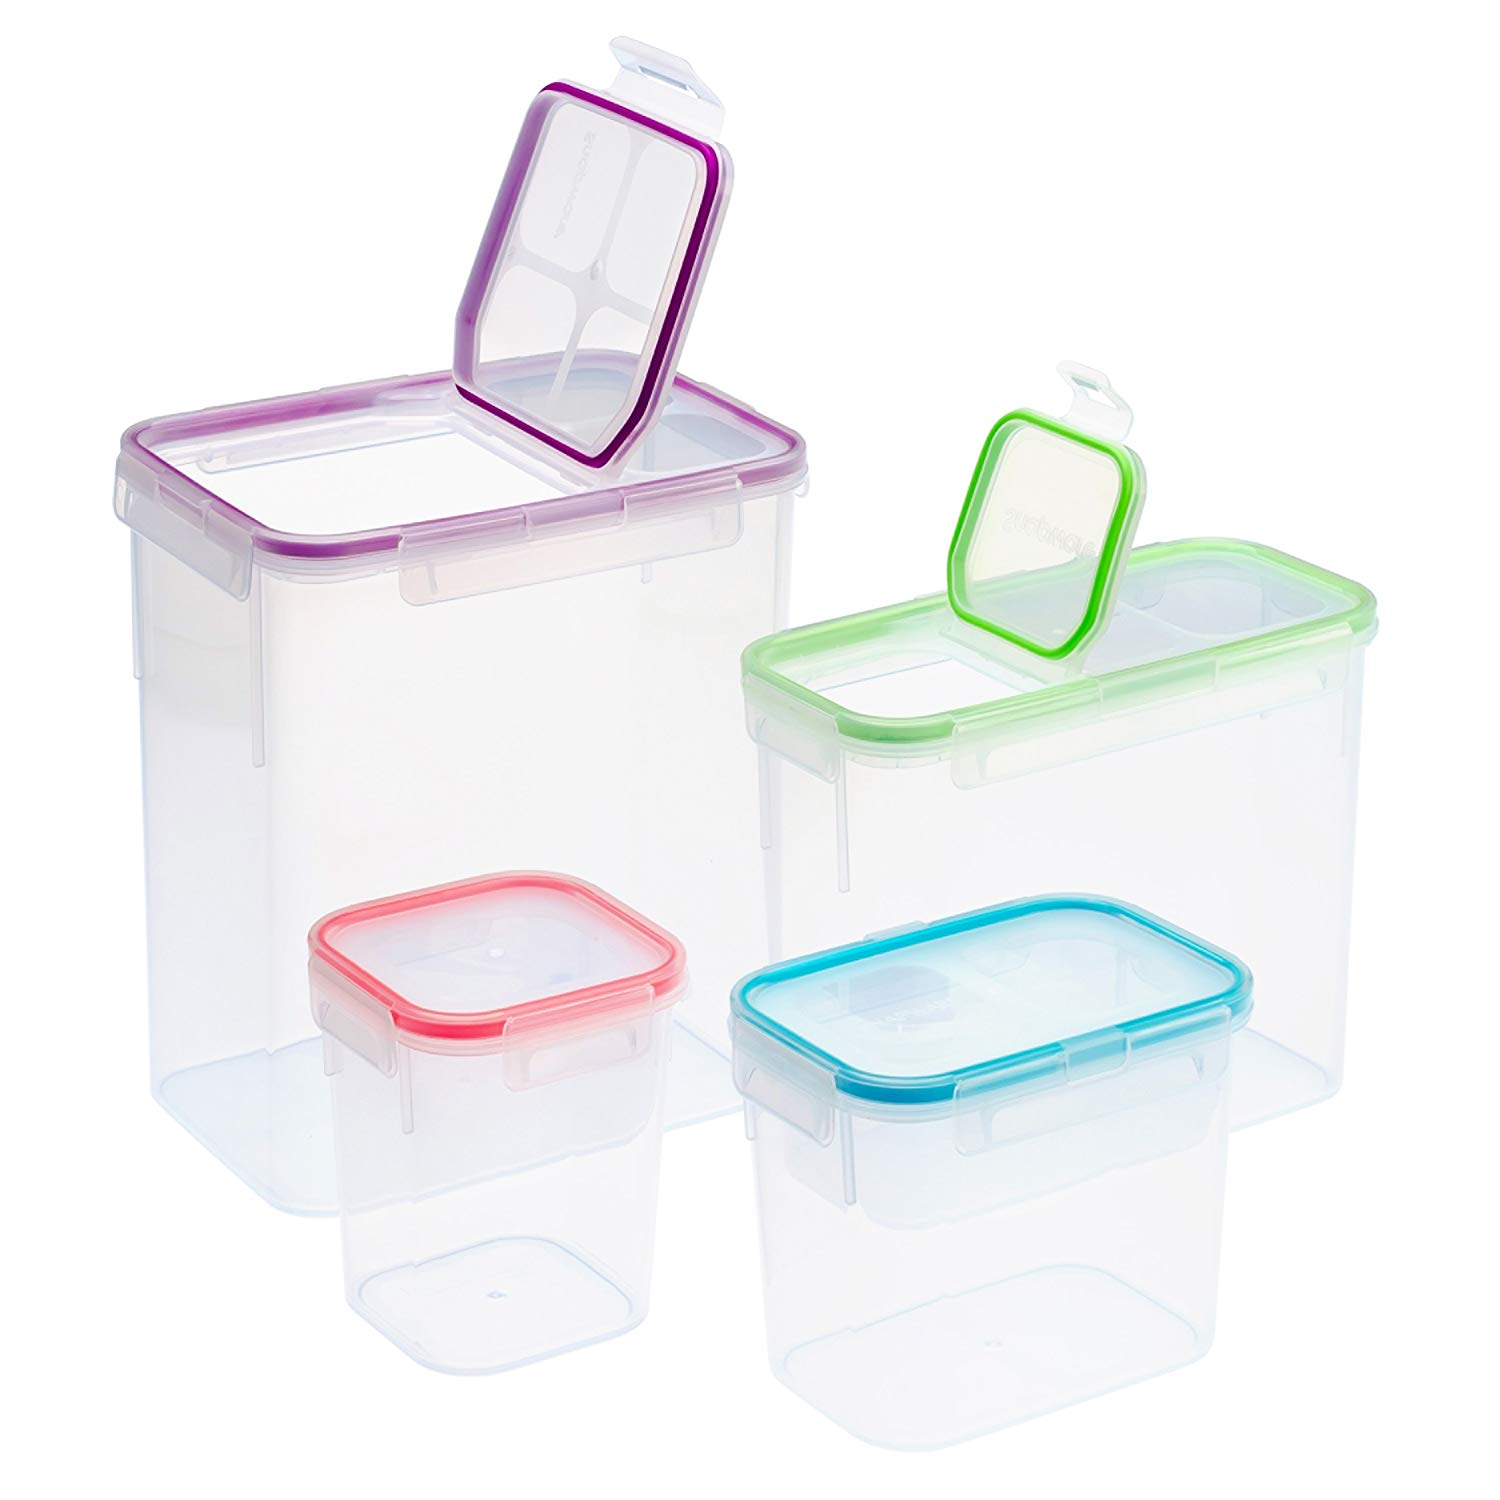 Snapware® 1.3 Cup Square Airtight Food Storage Container ITEM# 1098417